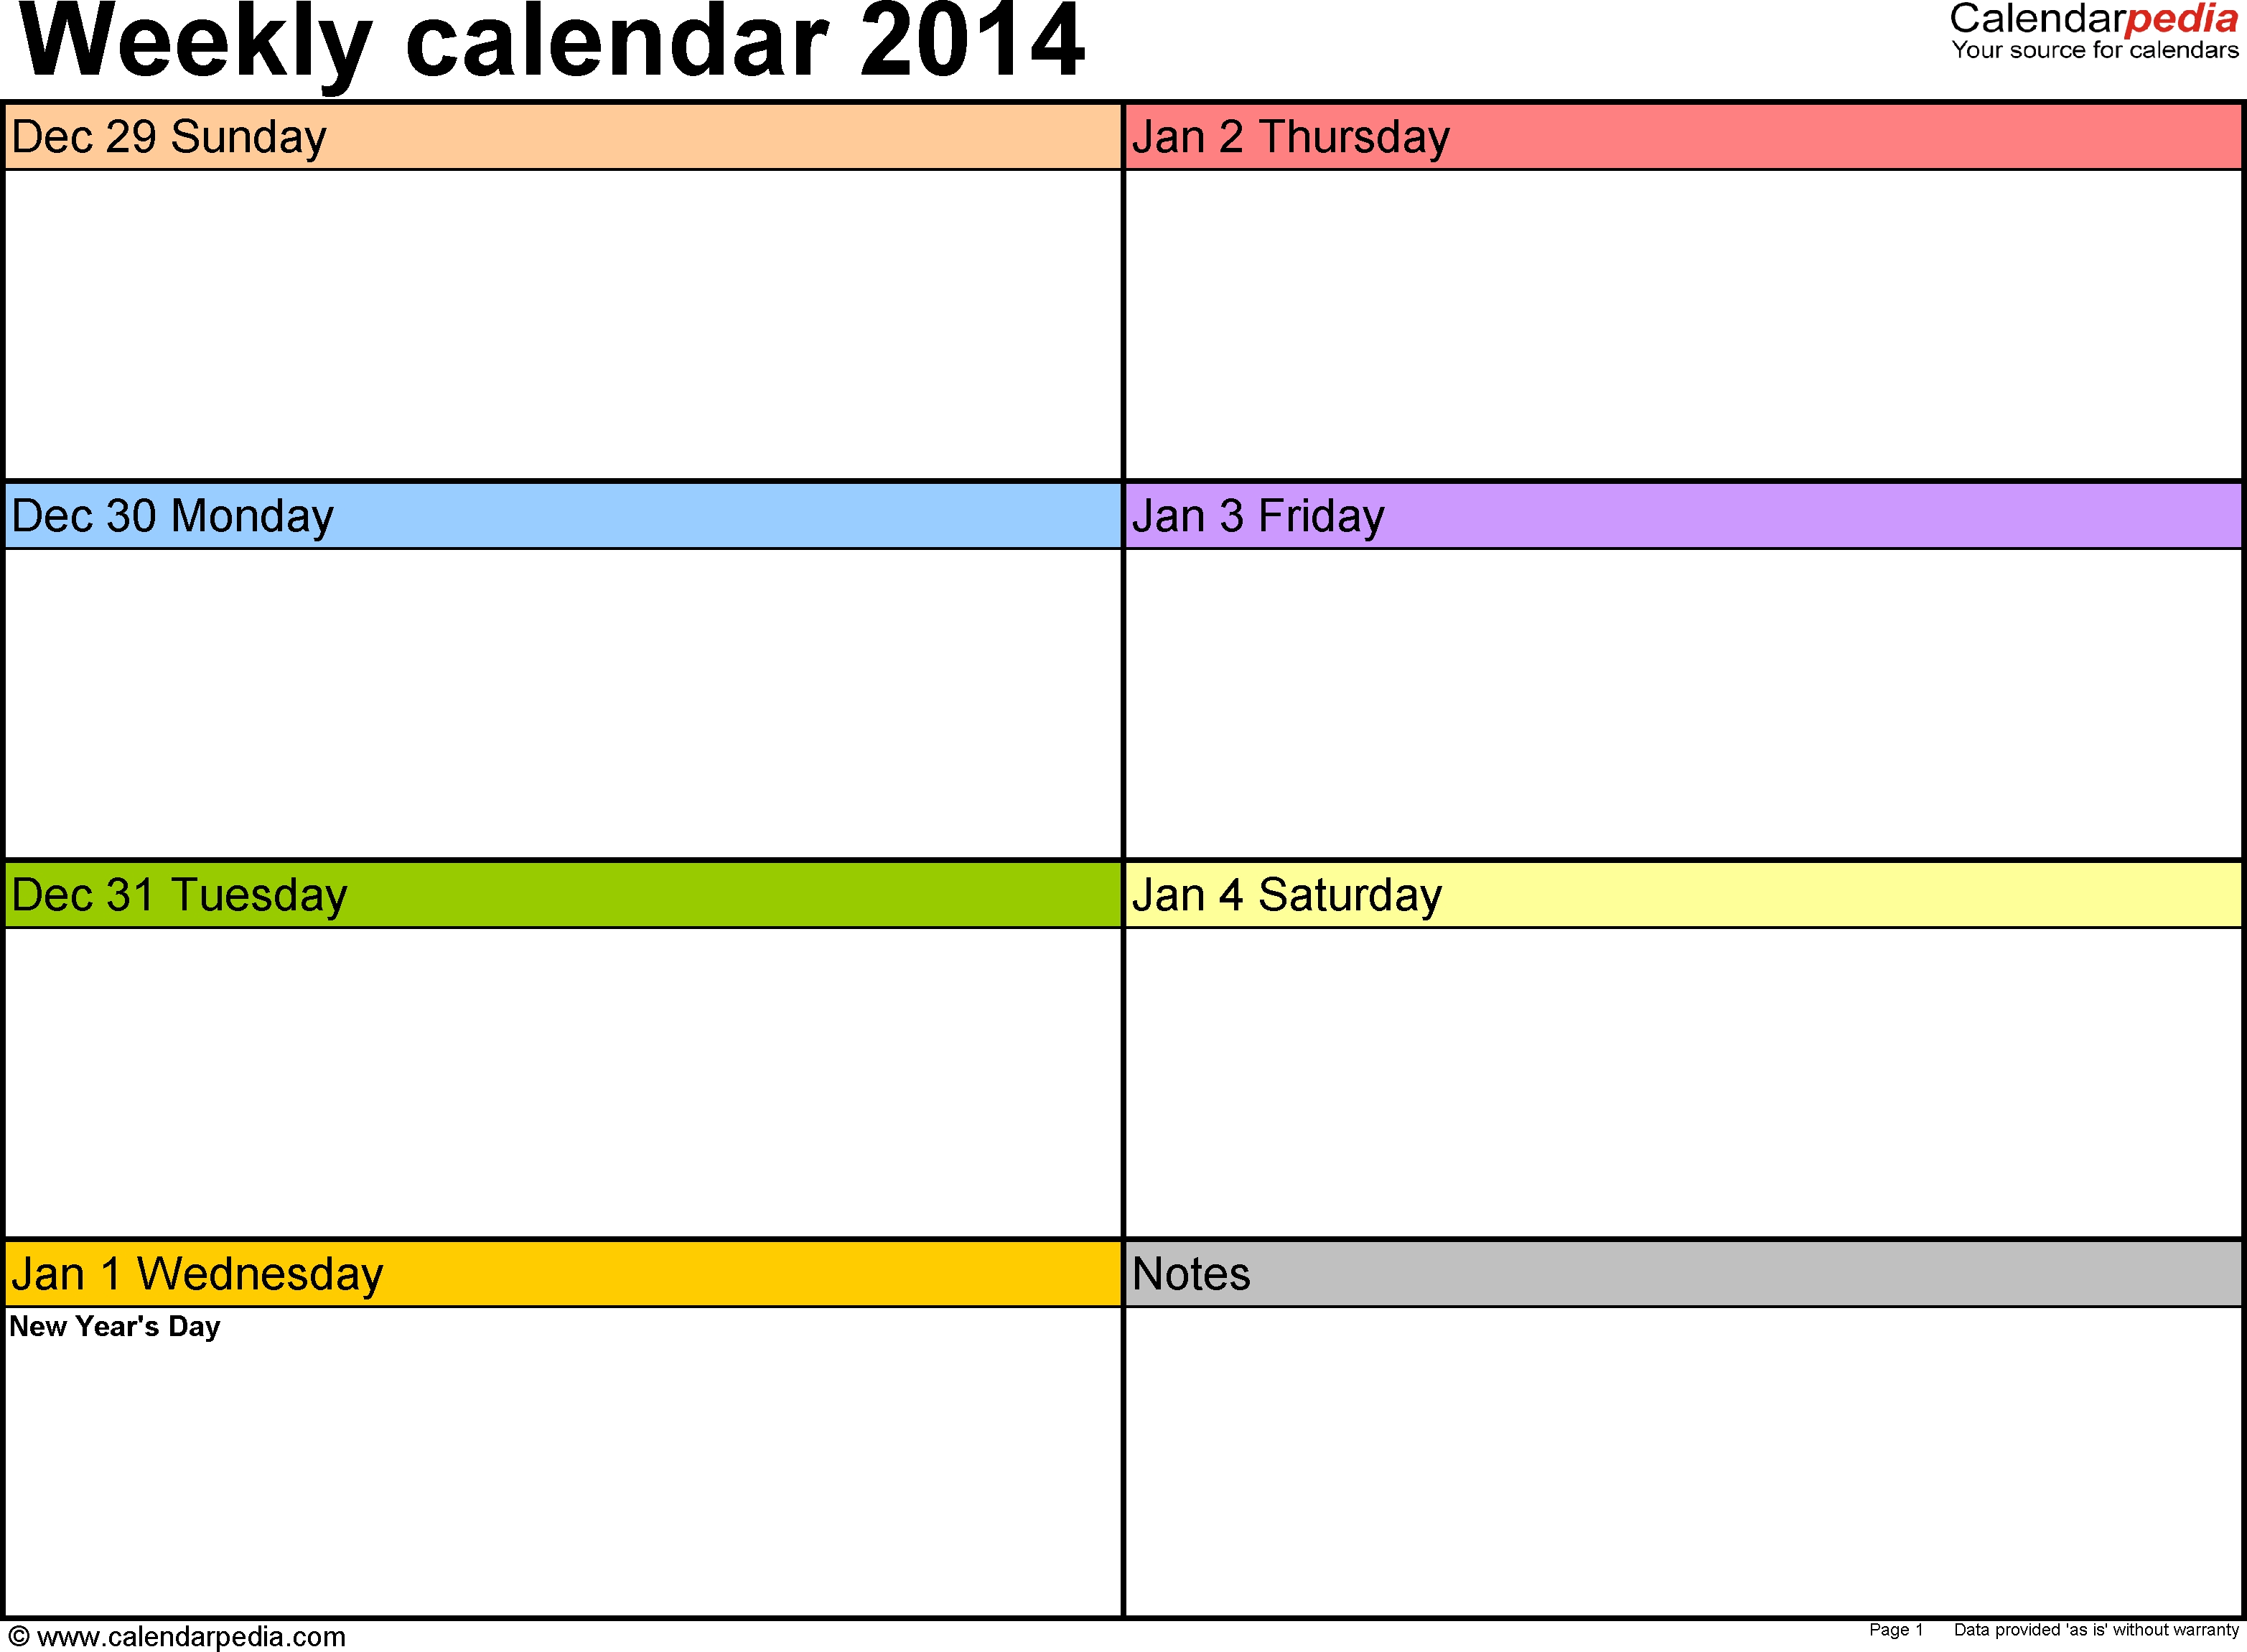 Weekly Calendar 2014 For Word - 4 Free Printable Templates pertaining to Emplyee Schedule Template Starting Friday